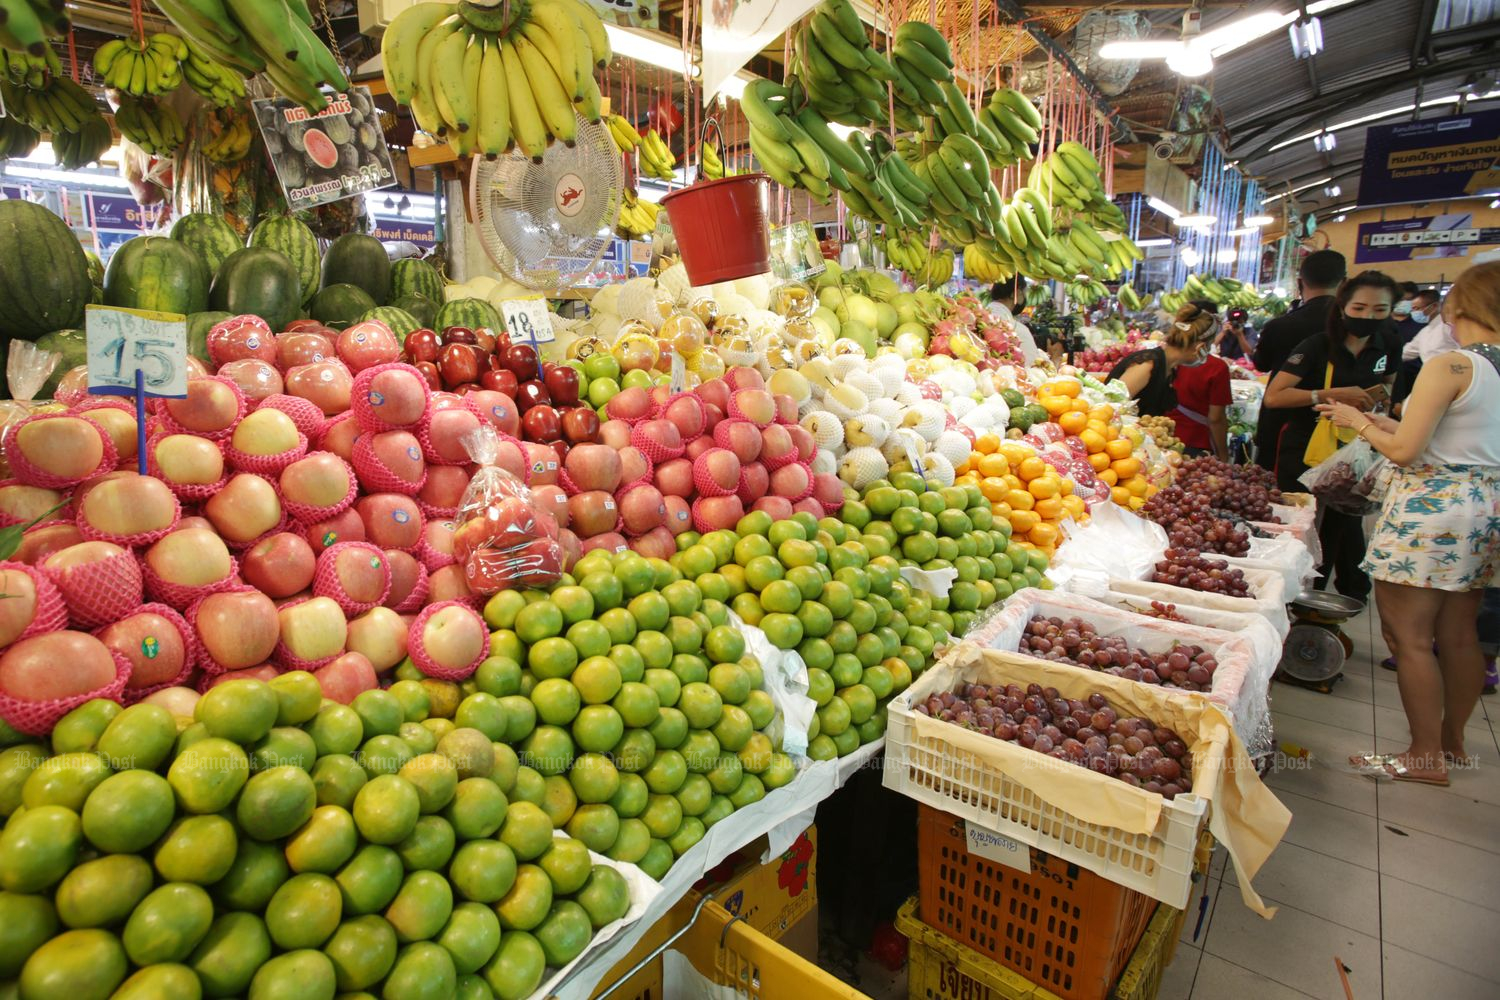 Fruit stalls at Ying Charoen market in Bangkok on Sept 1. The Finance Ministry projected the economy was likely to shrink less this year than the record 8.5% forecast previously. (Photo by Apichit Jinakul)